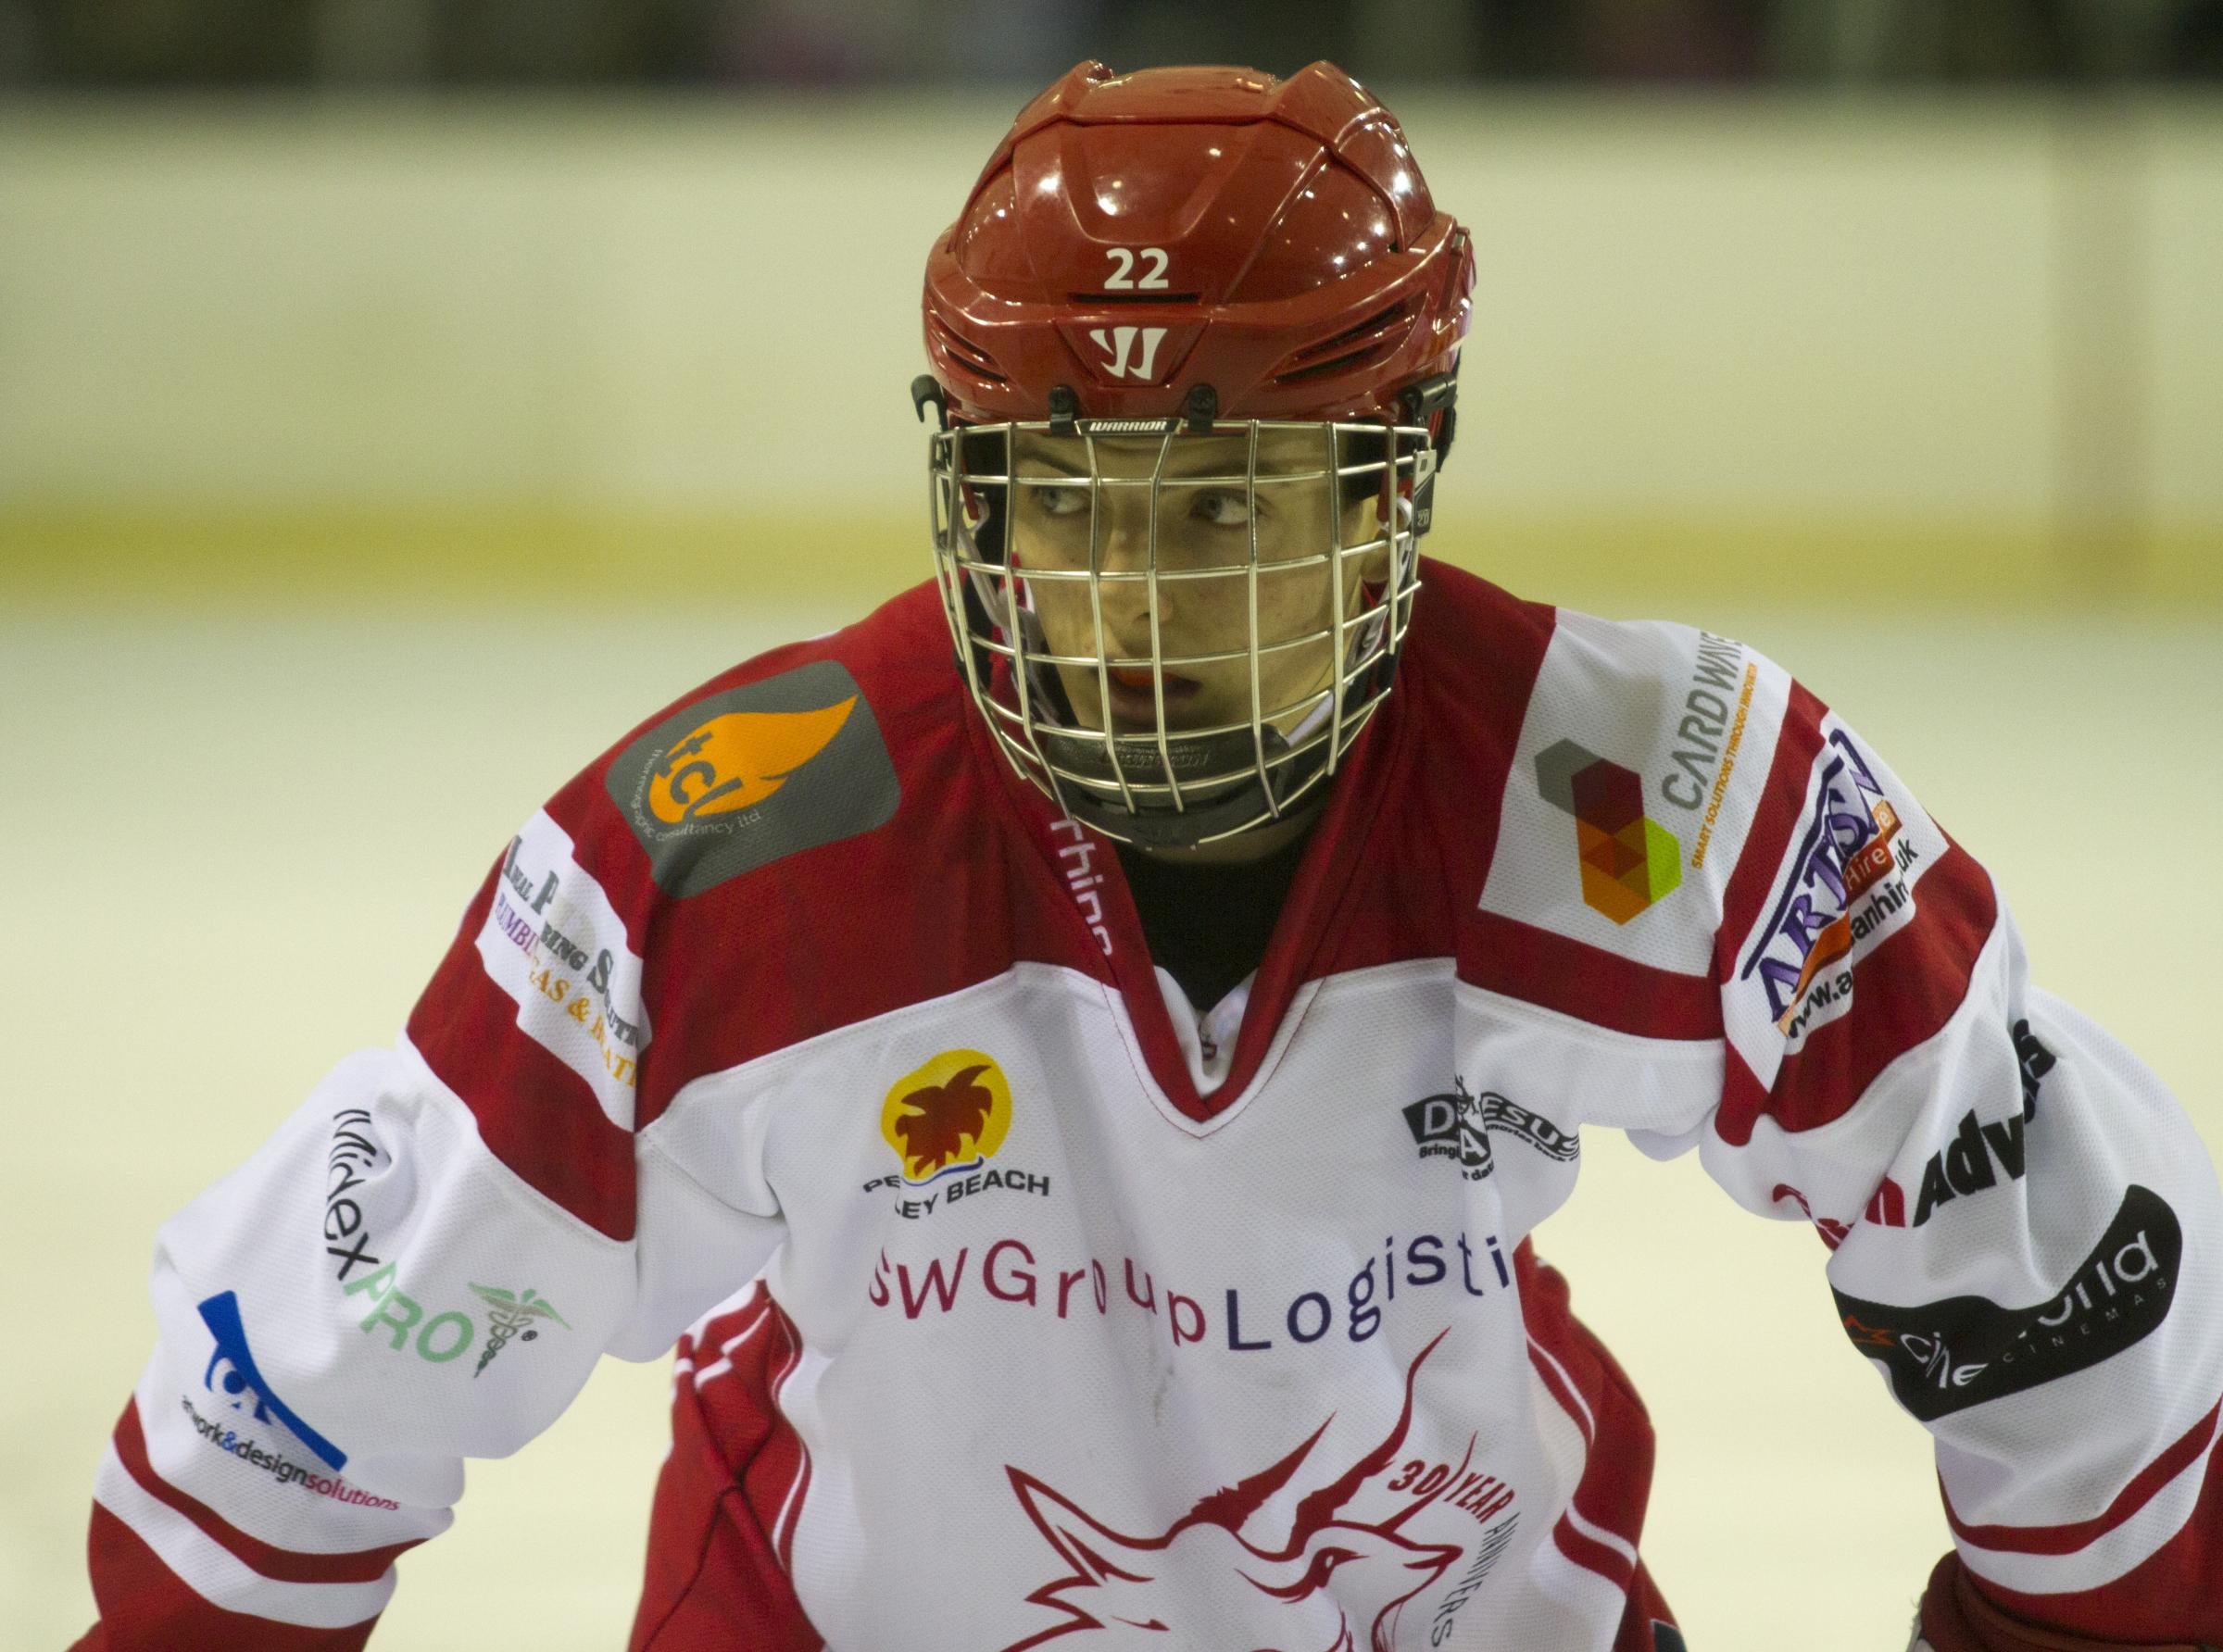 UK: Youngster Jordan Kelsall Still Available For Swindon Wildcats After Signing Nottingham Panthers Deal